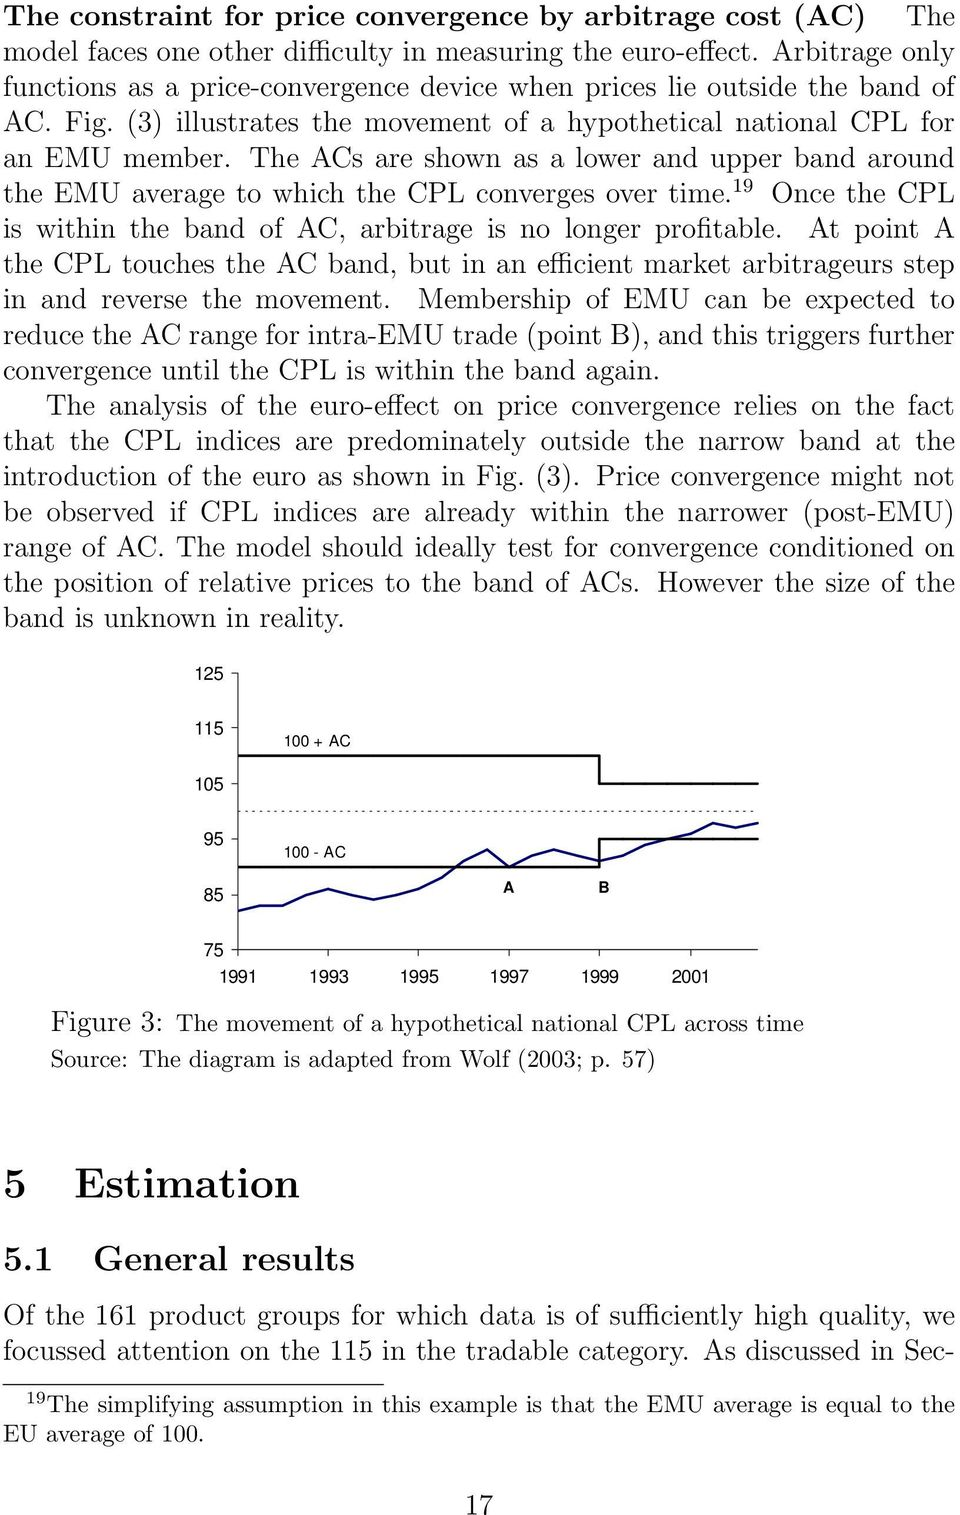 The ACs are shown as a lower and upper band around the EMU average to which the CPL converges over time. 19 Once the CPL is within the band of AC, arbitrage is no longer profitable.